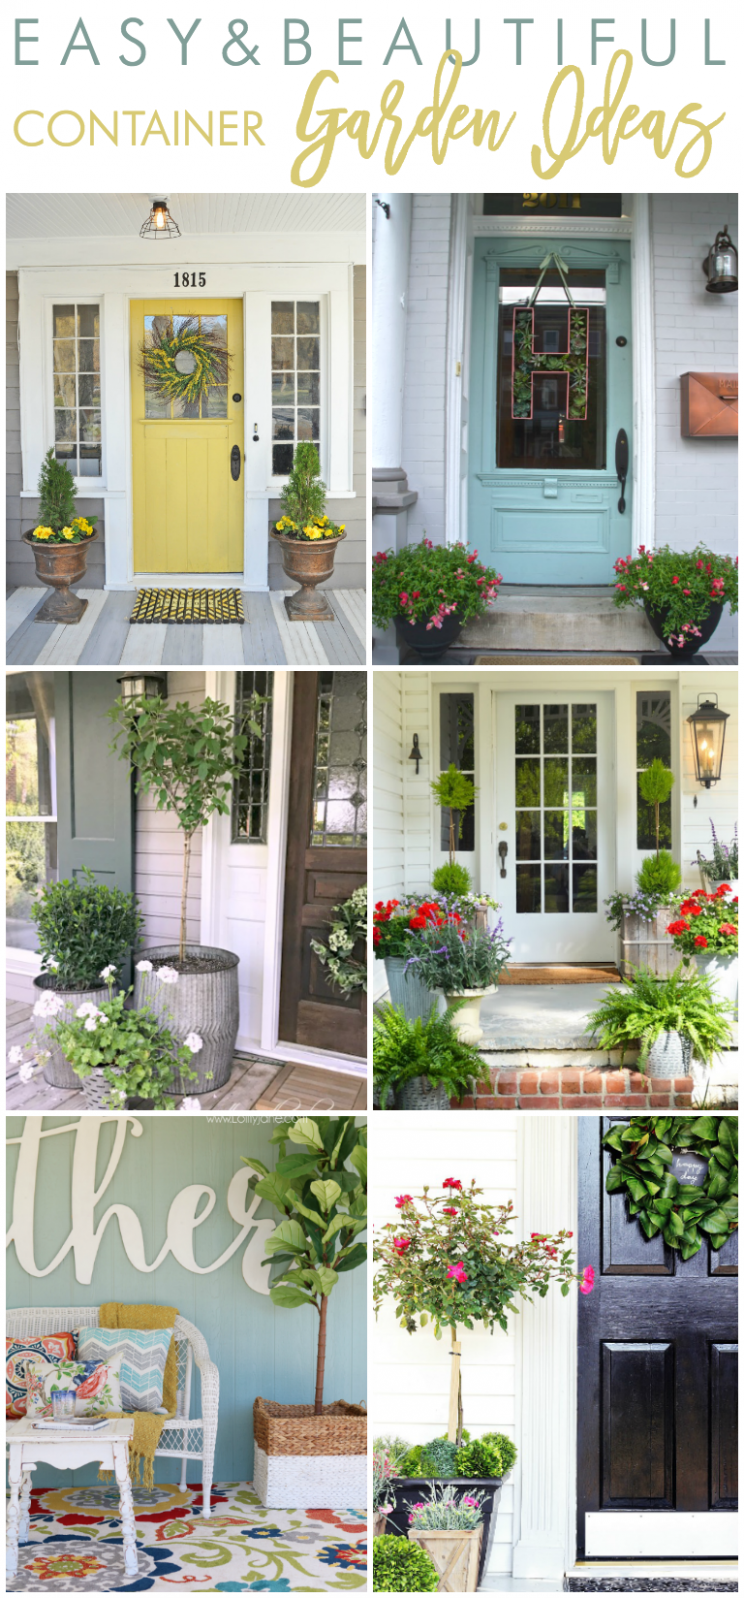 Easy and Beautiful Container Garden Ideas for Your Porch | Porch ...